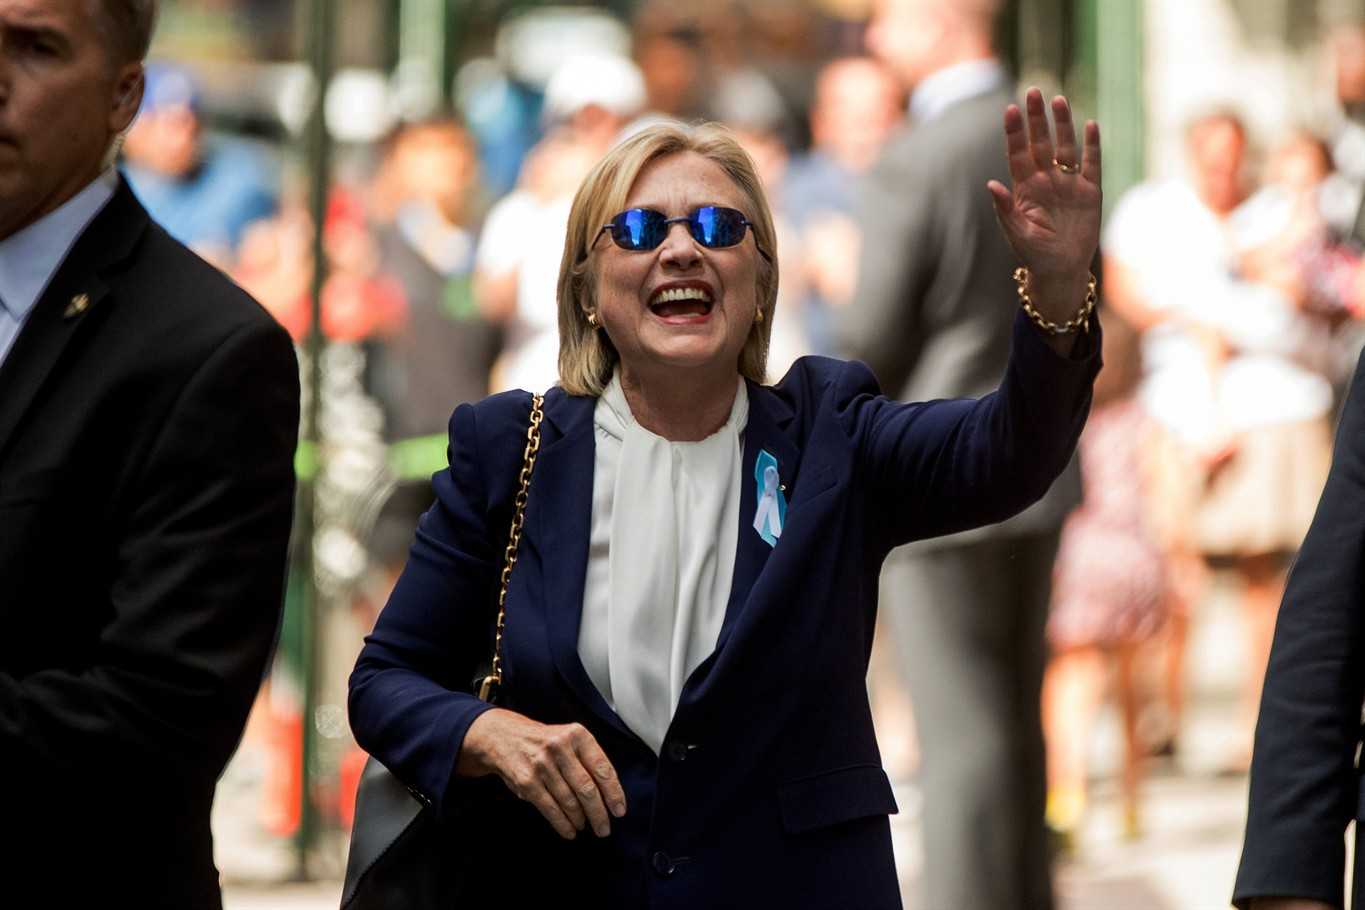 Hillary Clinton to release additional health records, campaign says